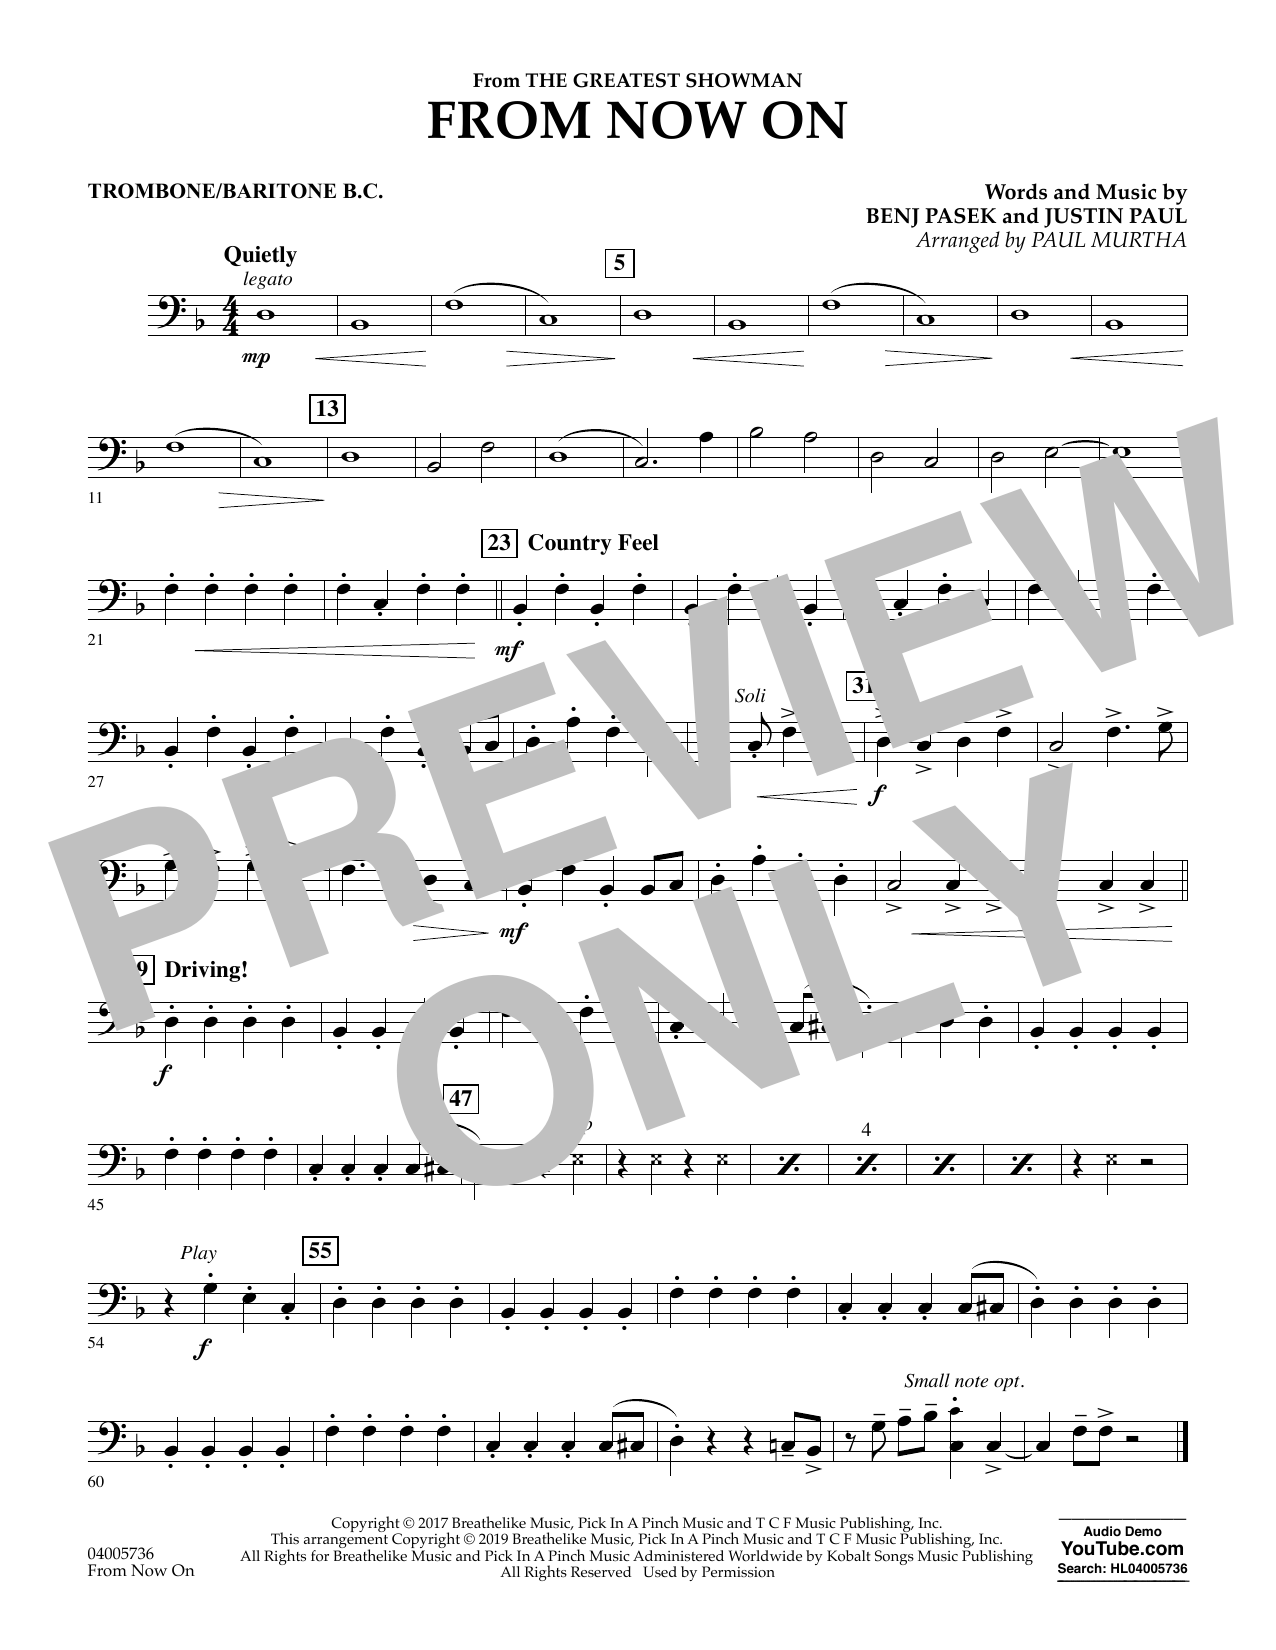 From Now On (from The Greatest Showman) (arr. Paul Murtha) - Trombone/Baritone B.C. (Concert Band)